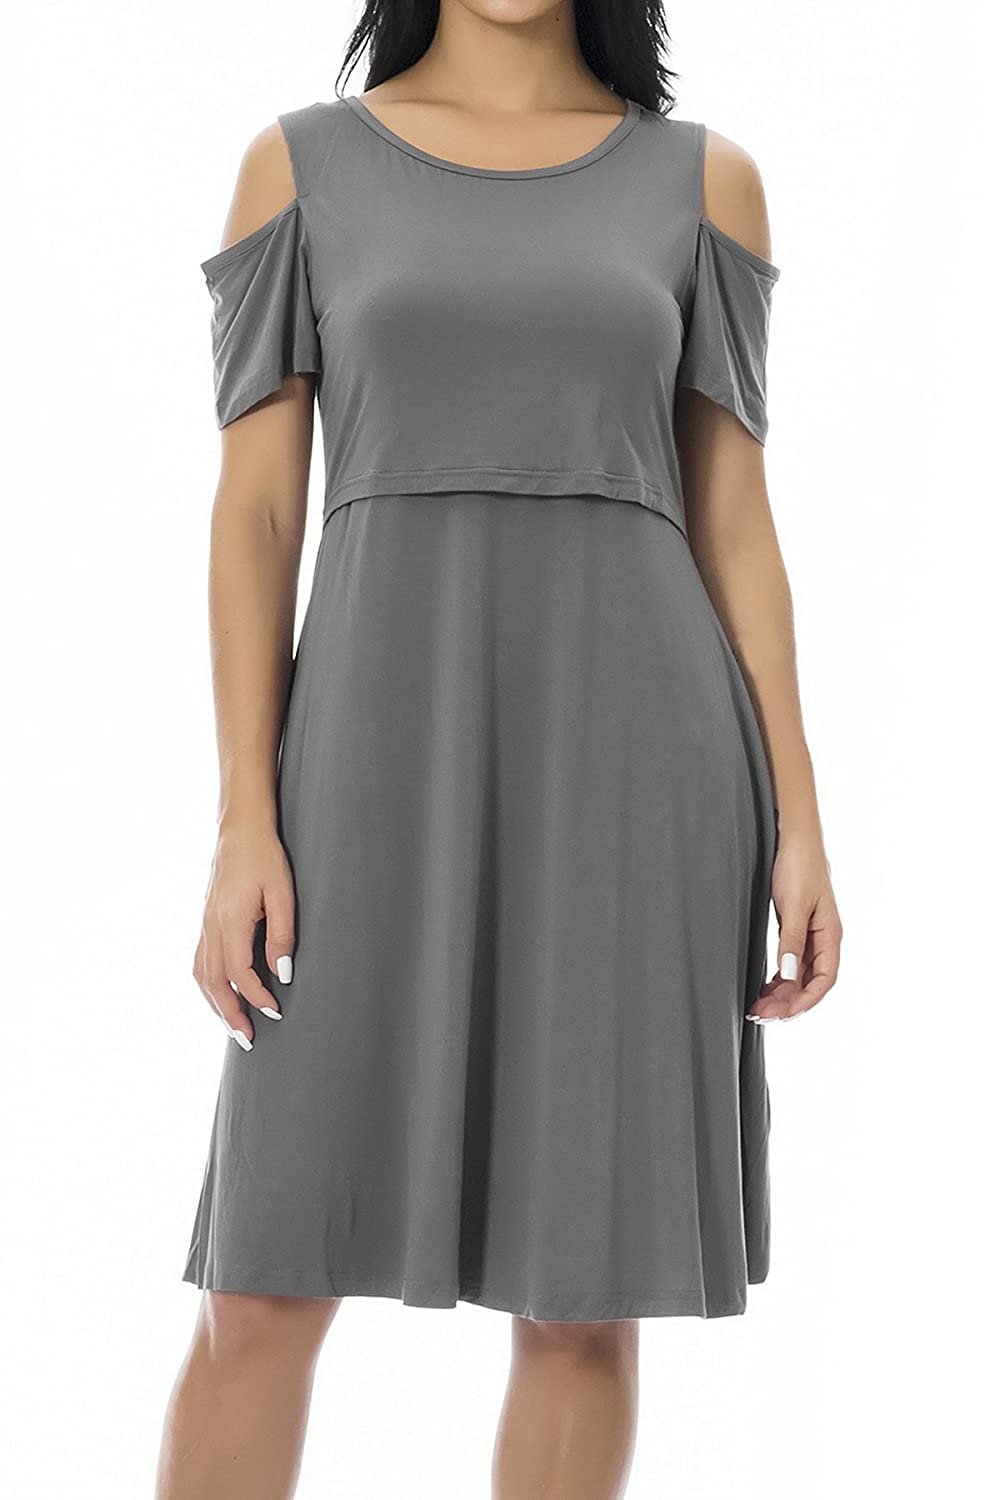 82f32a18c384c Lift up the flap to nurse,easy for breastfeeding. Great dress for dressing  up or down,perfect for hiding the postpartum belly. Cold shoulder ...